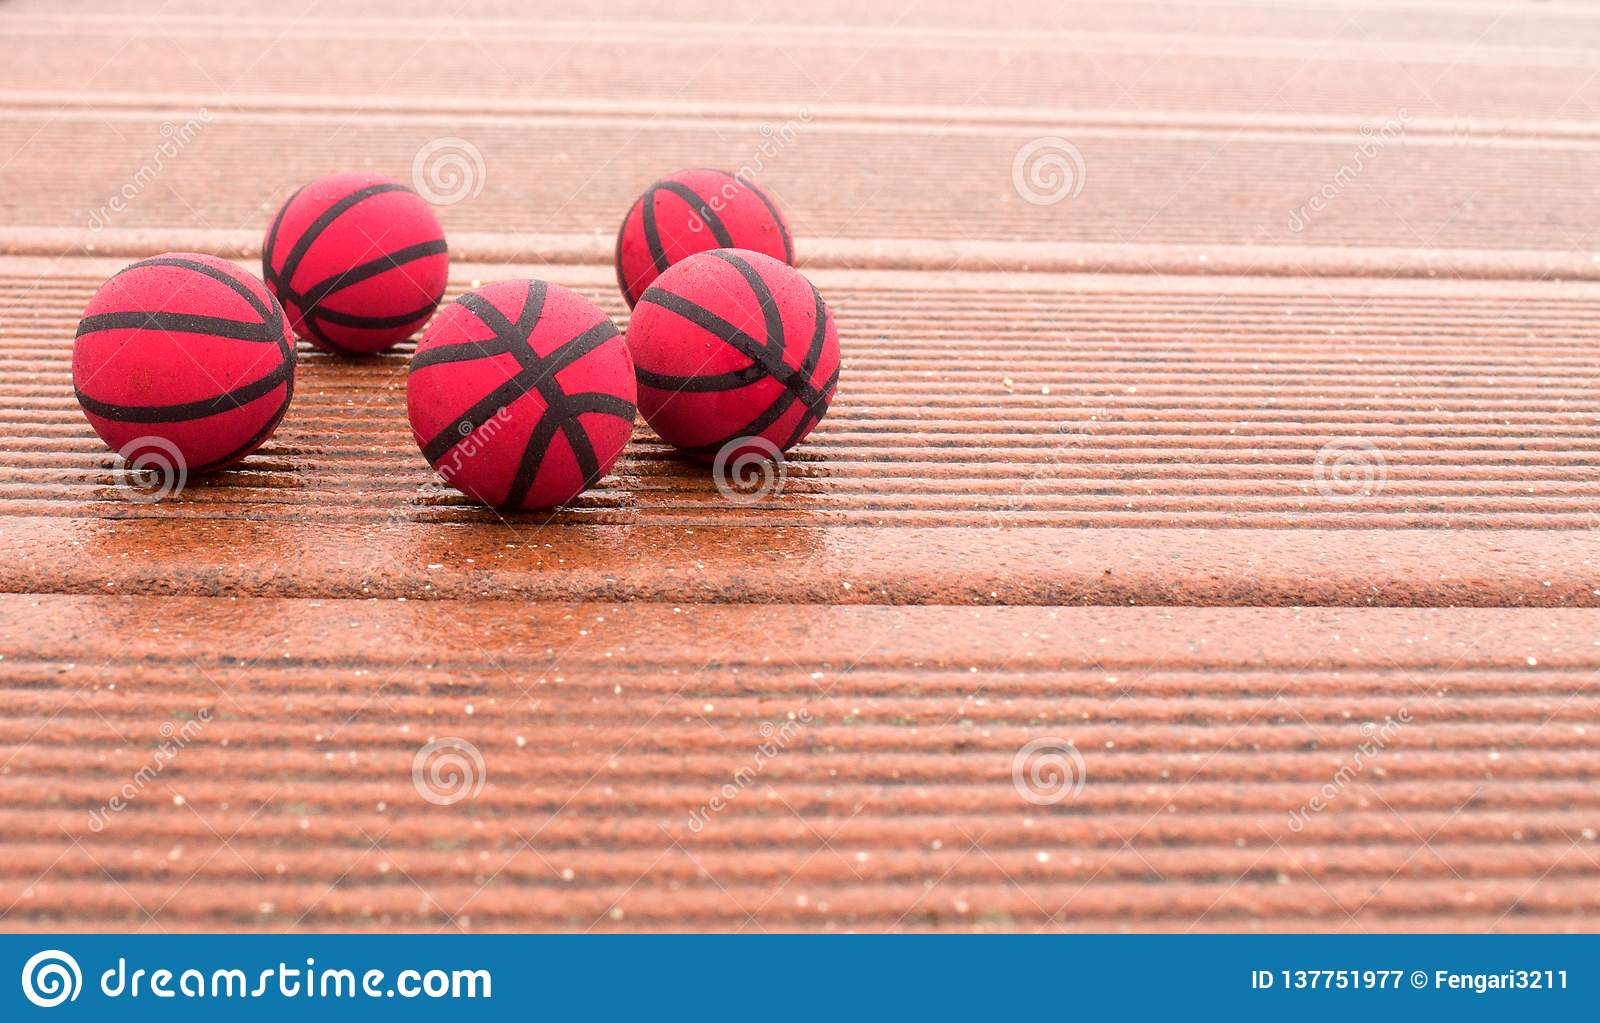 Five red basketballs on the texture panels